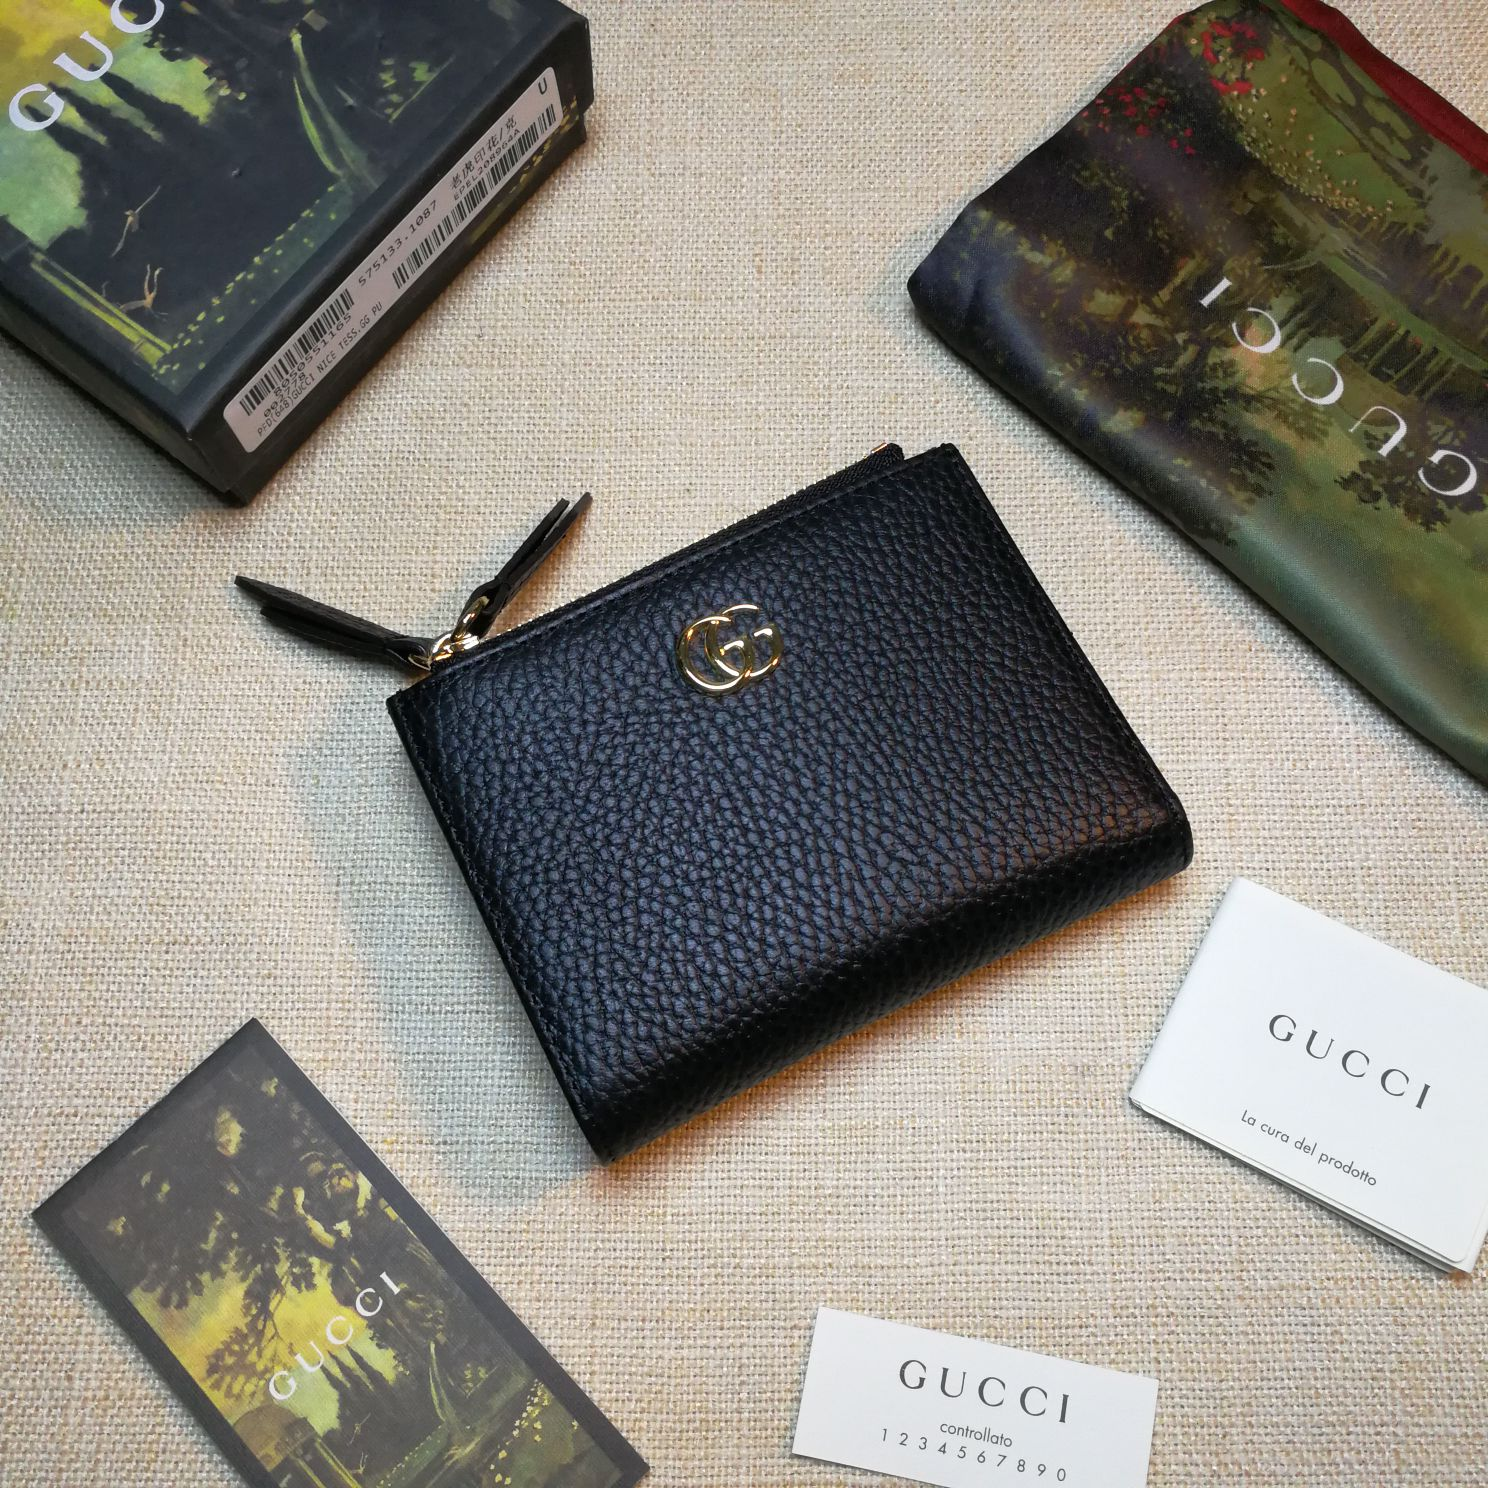 Copy Gucci 474747 GG Marmont Leather Wallet Black